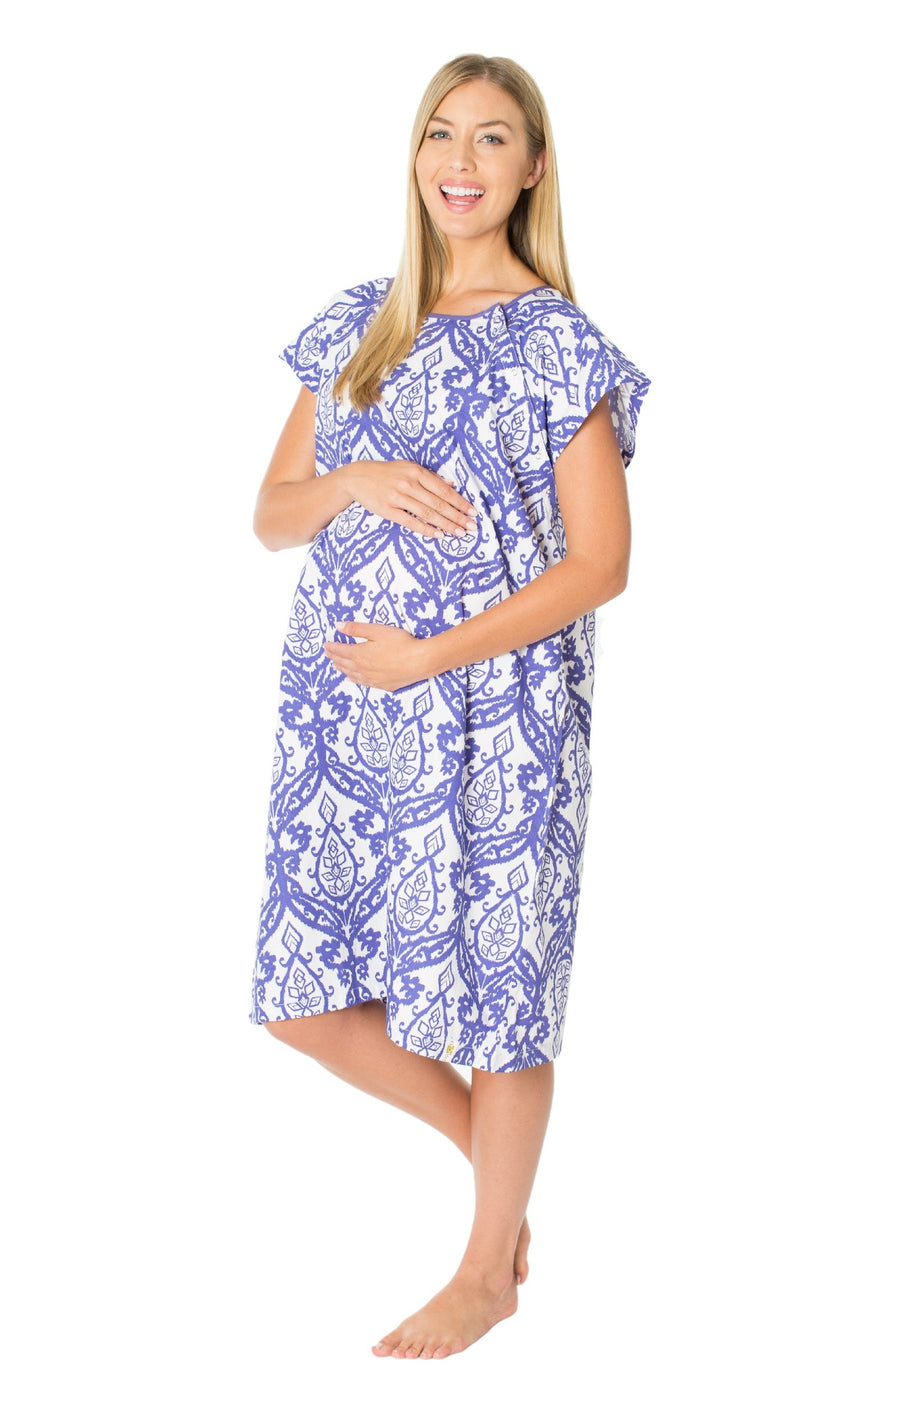 Brie Gownie Maternity Delivery Labor Hospital Birthing Gown – Baby ...